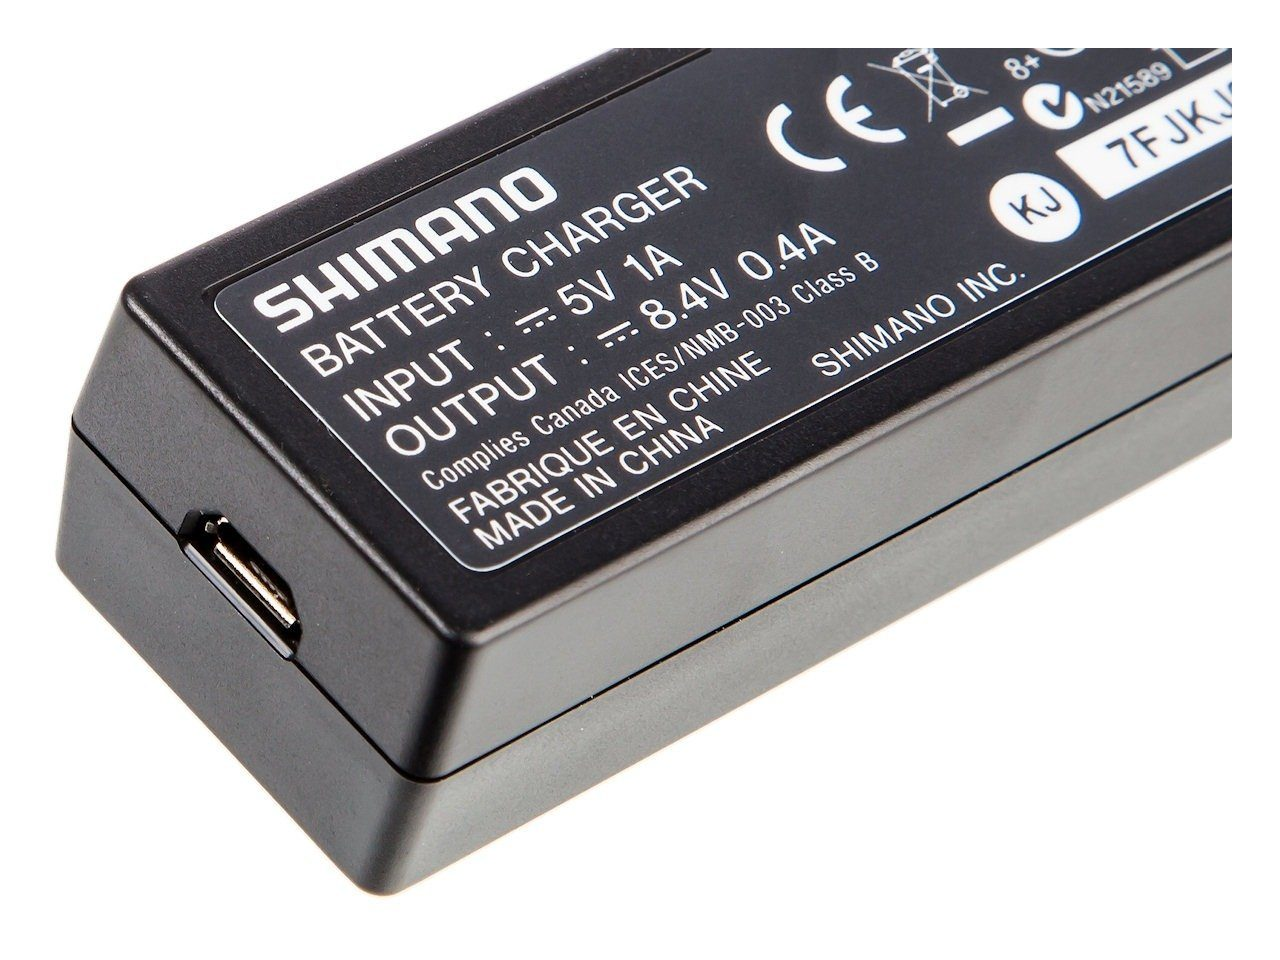 Shimano BCR2 Di2 Charger USB Cable